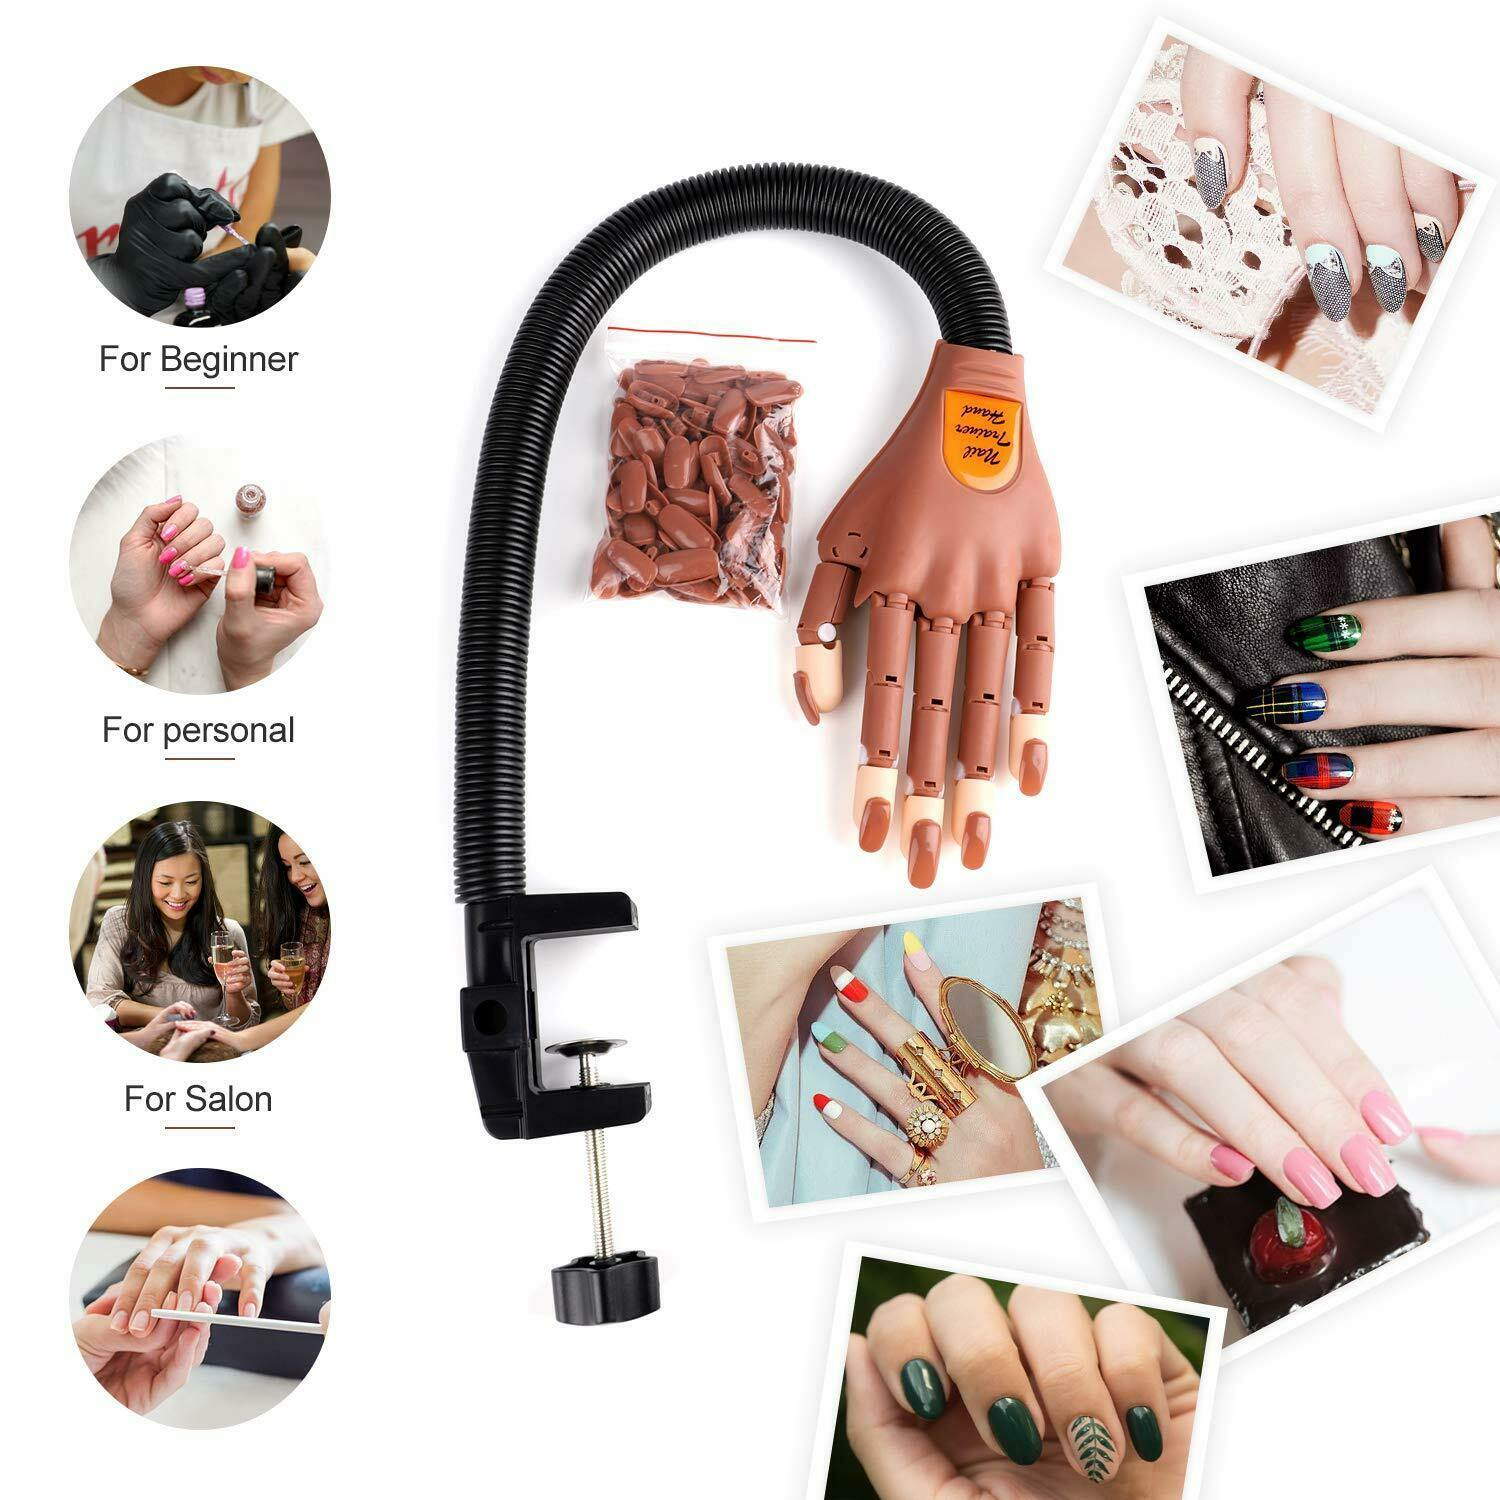 Free shiping Manicure Practice Includes 100 PCS of Nail piece DIY printing practice tools for the best manicure